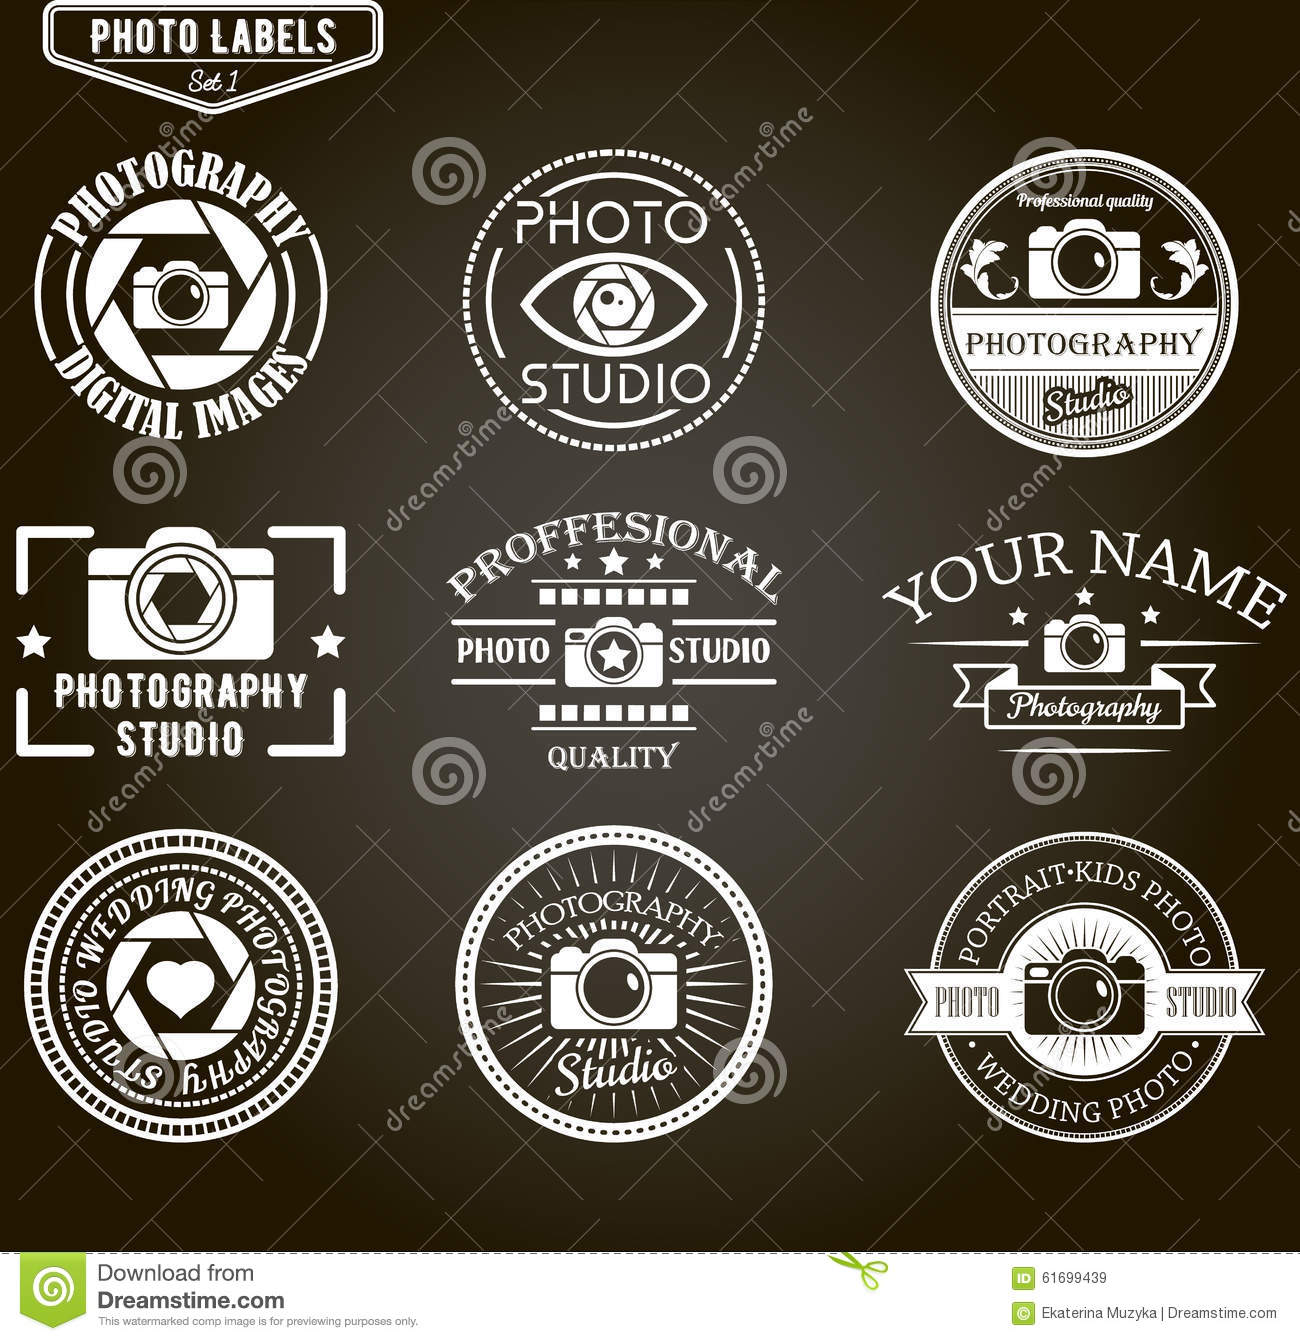 Wedding Photography Studio Logo: Vector Set Of Photography Logo Templates. Photo Stock